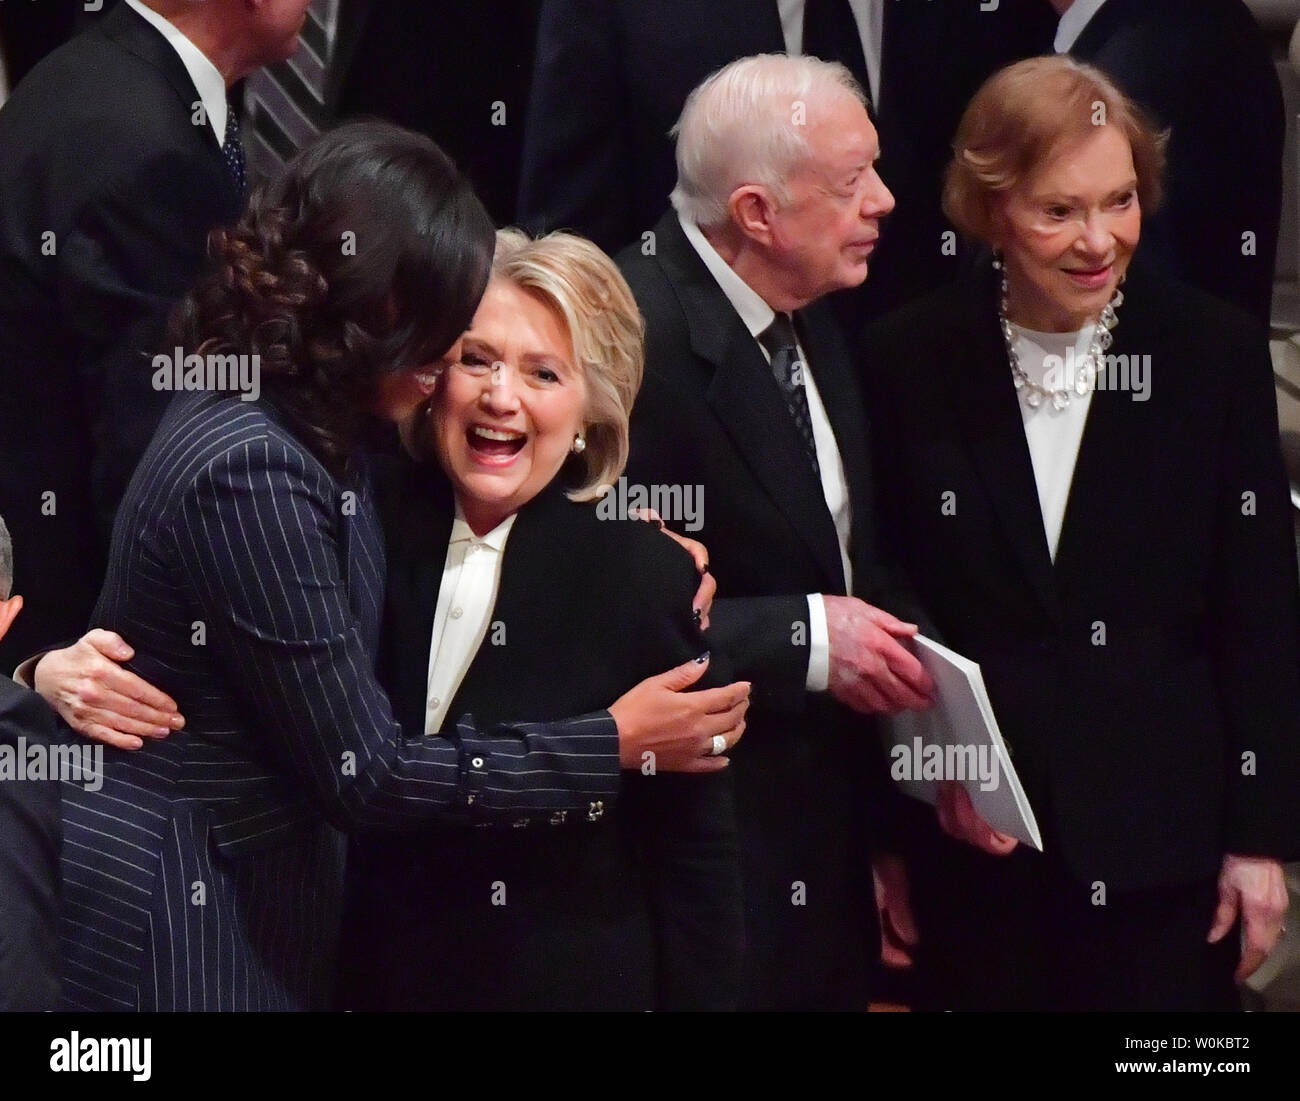 Hillary Clinton hugs Michelle Obama as former presidents and spouses assemble at the funeral of President George H.W. Bush at the National Cathedral in Washington D.C. on December 5, 2018. At right ,Jimmy Carter and his wife Rosalynn talk.      Photo by Kevin Dietsch/UPI Stock Photo